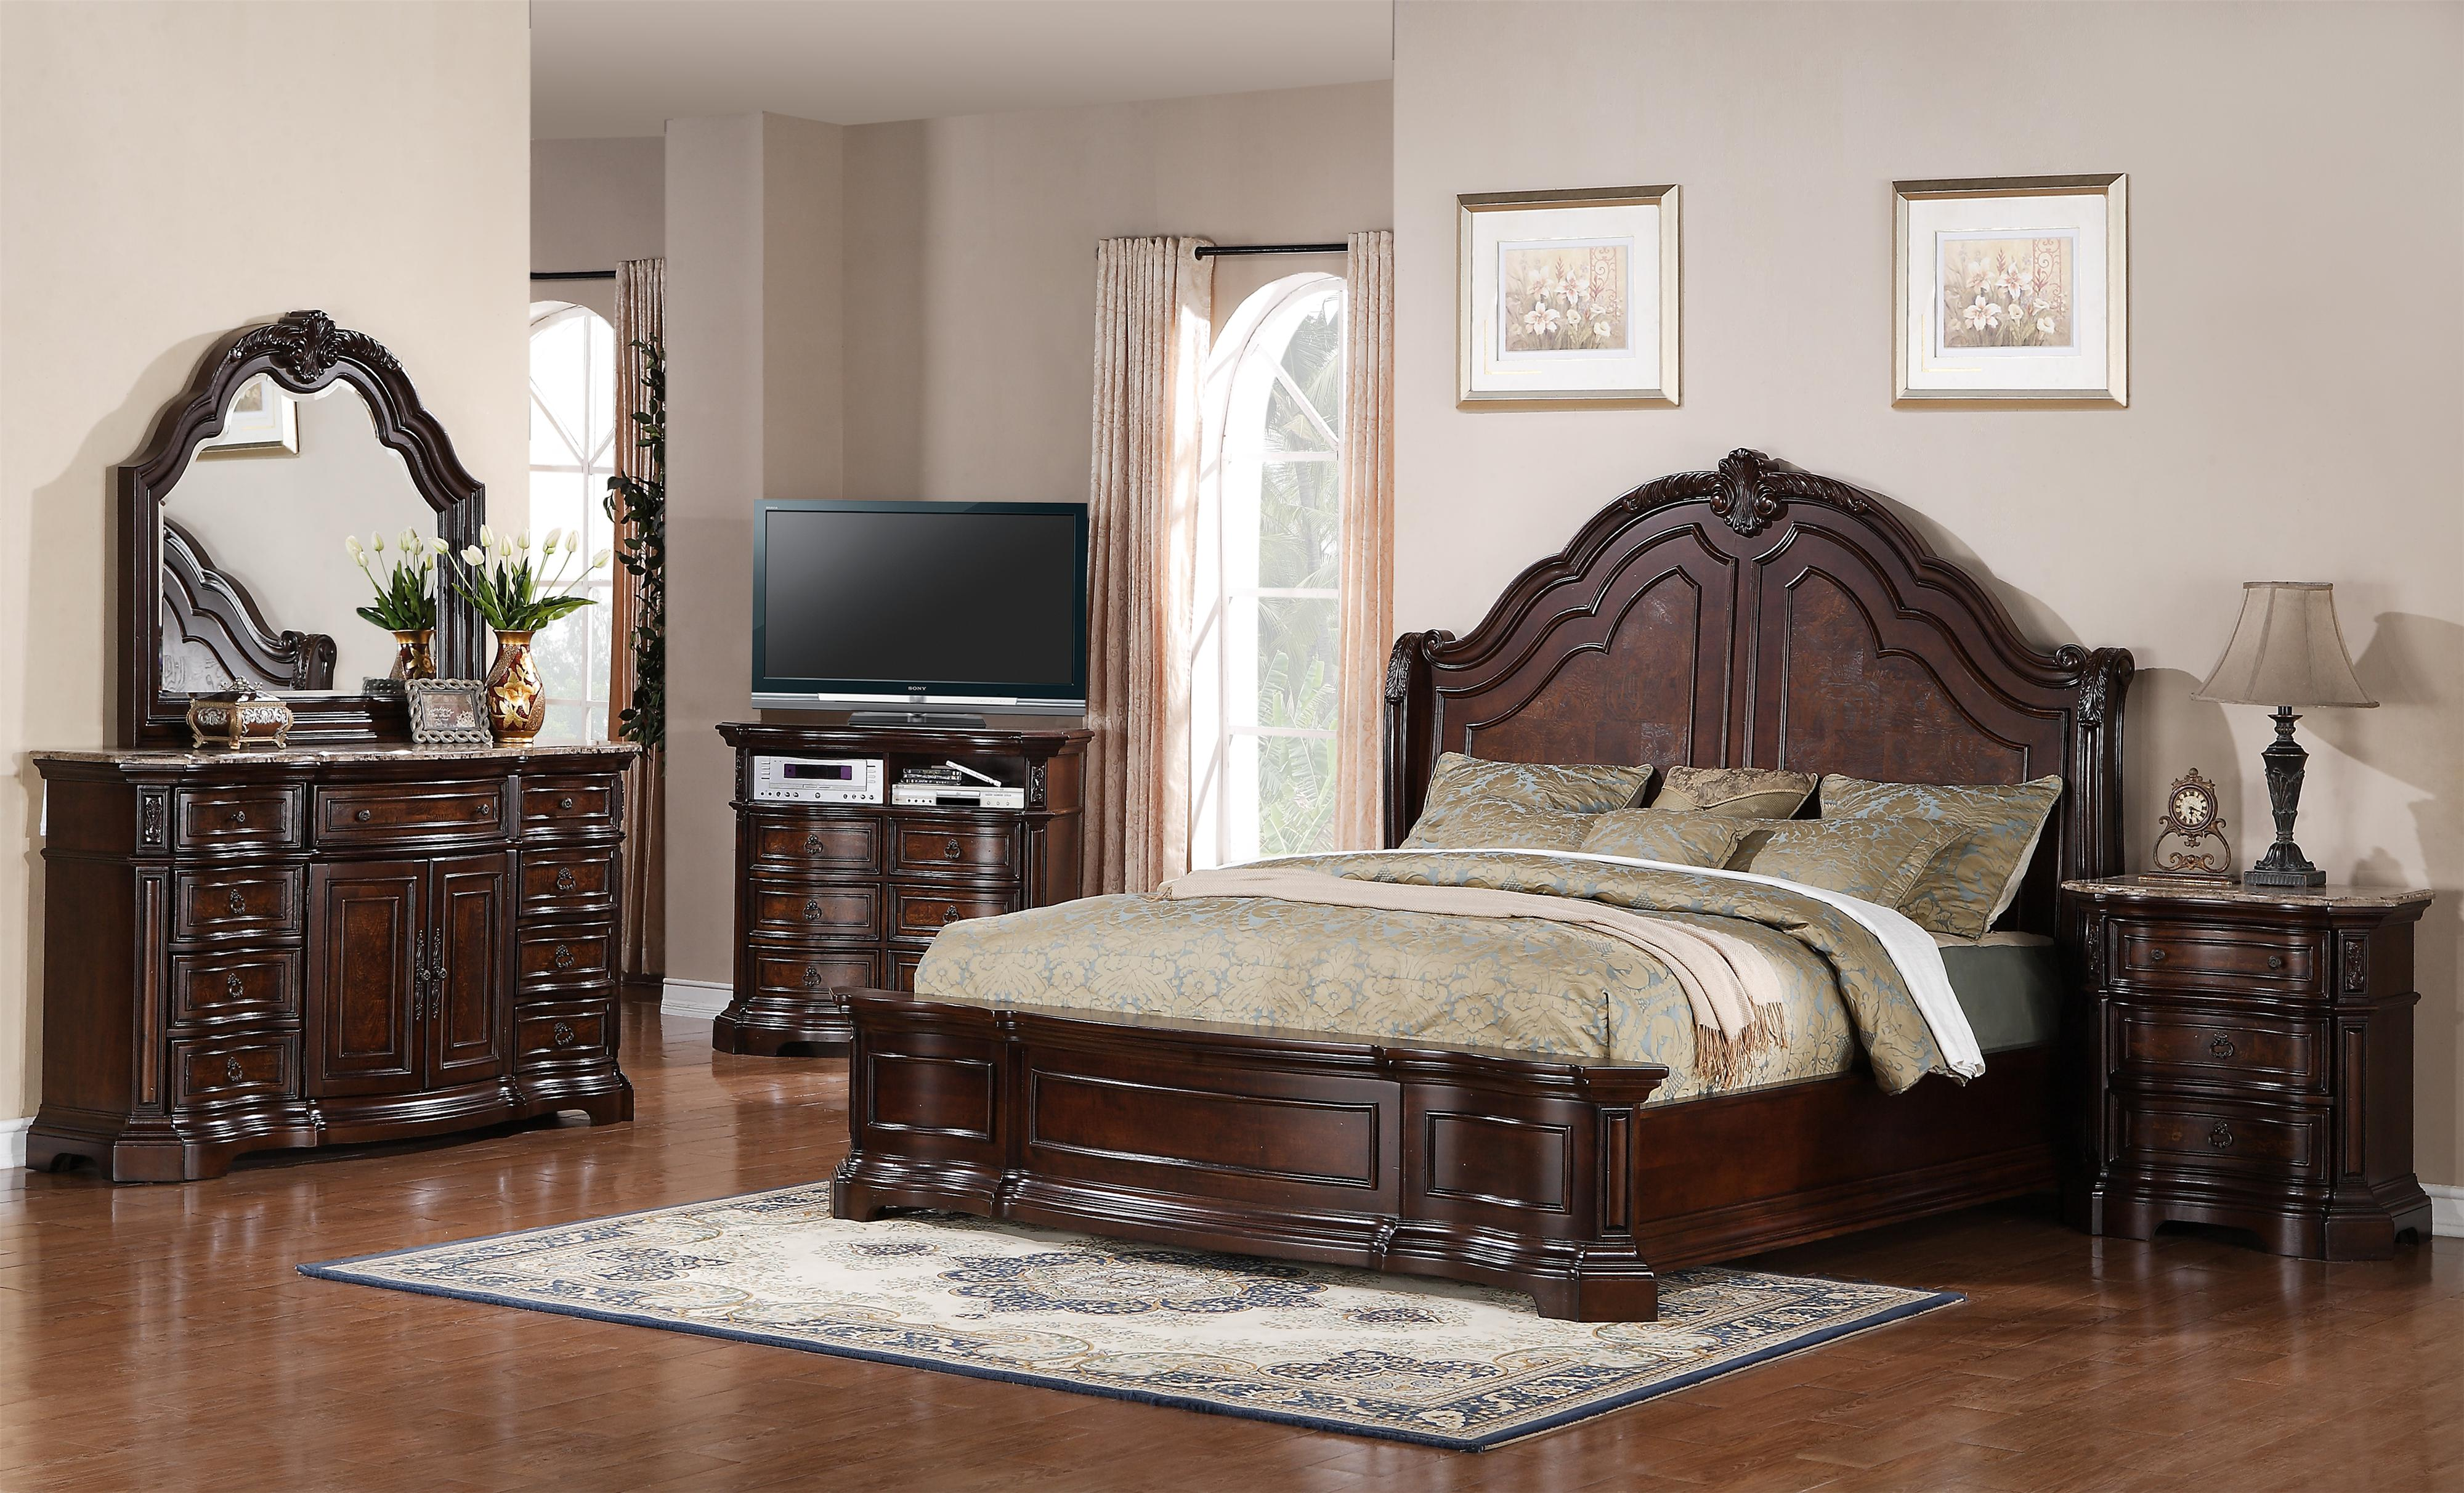 Samuel Lawrence Edington Queen Bedroom Group - Item Number: 8328 Q Bedroom Group 1